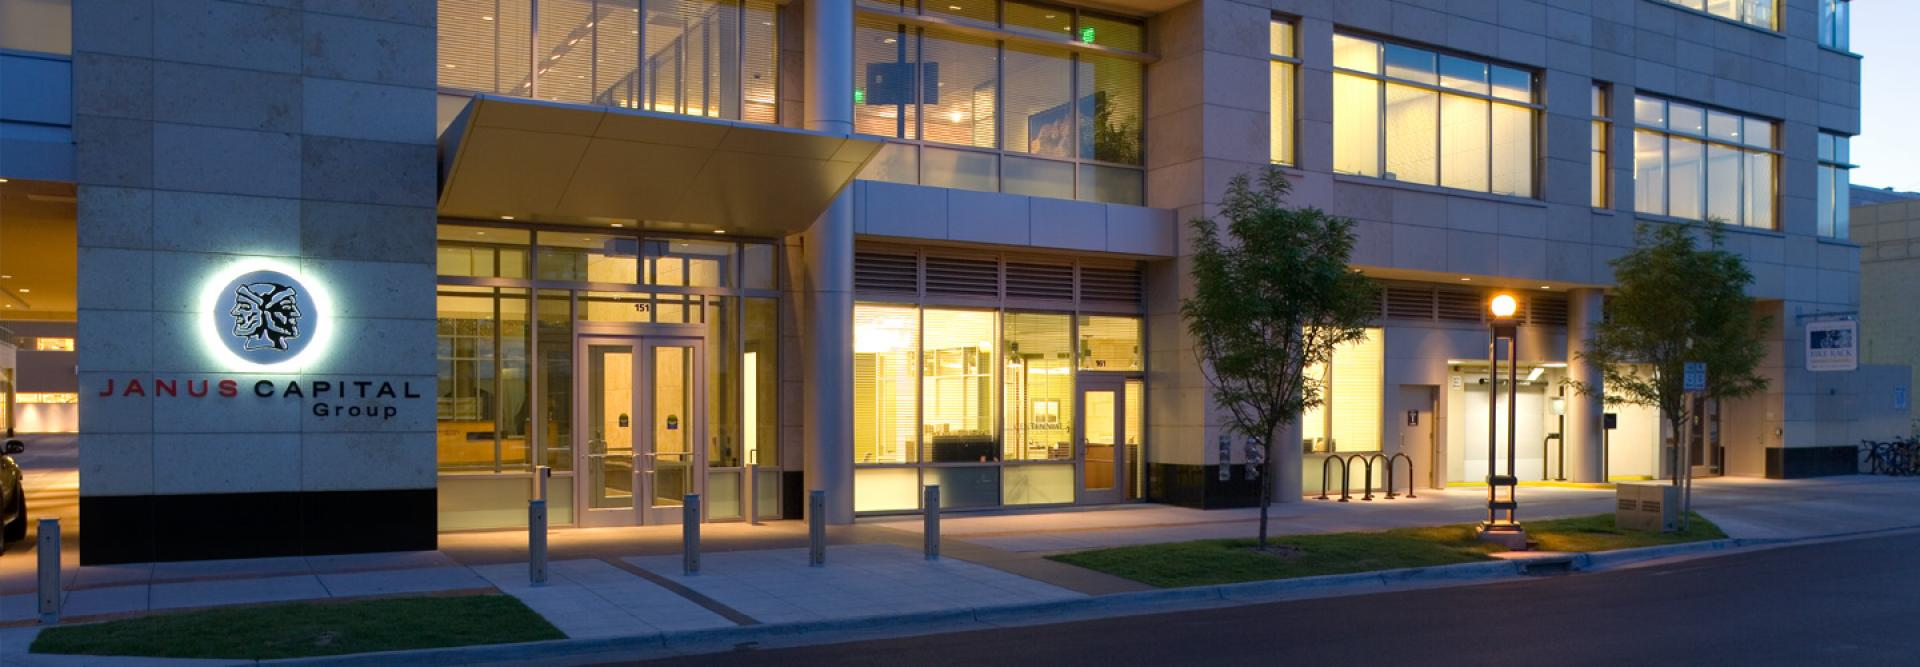 Janus Capital Group World Headquarters - Night Entrance